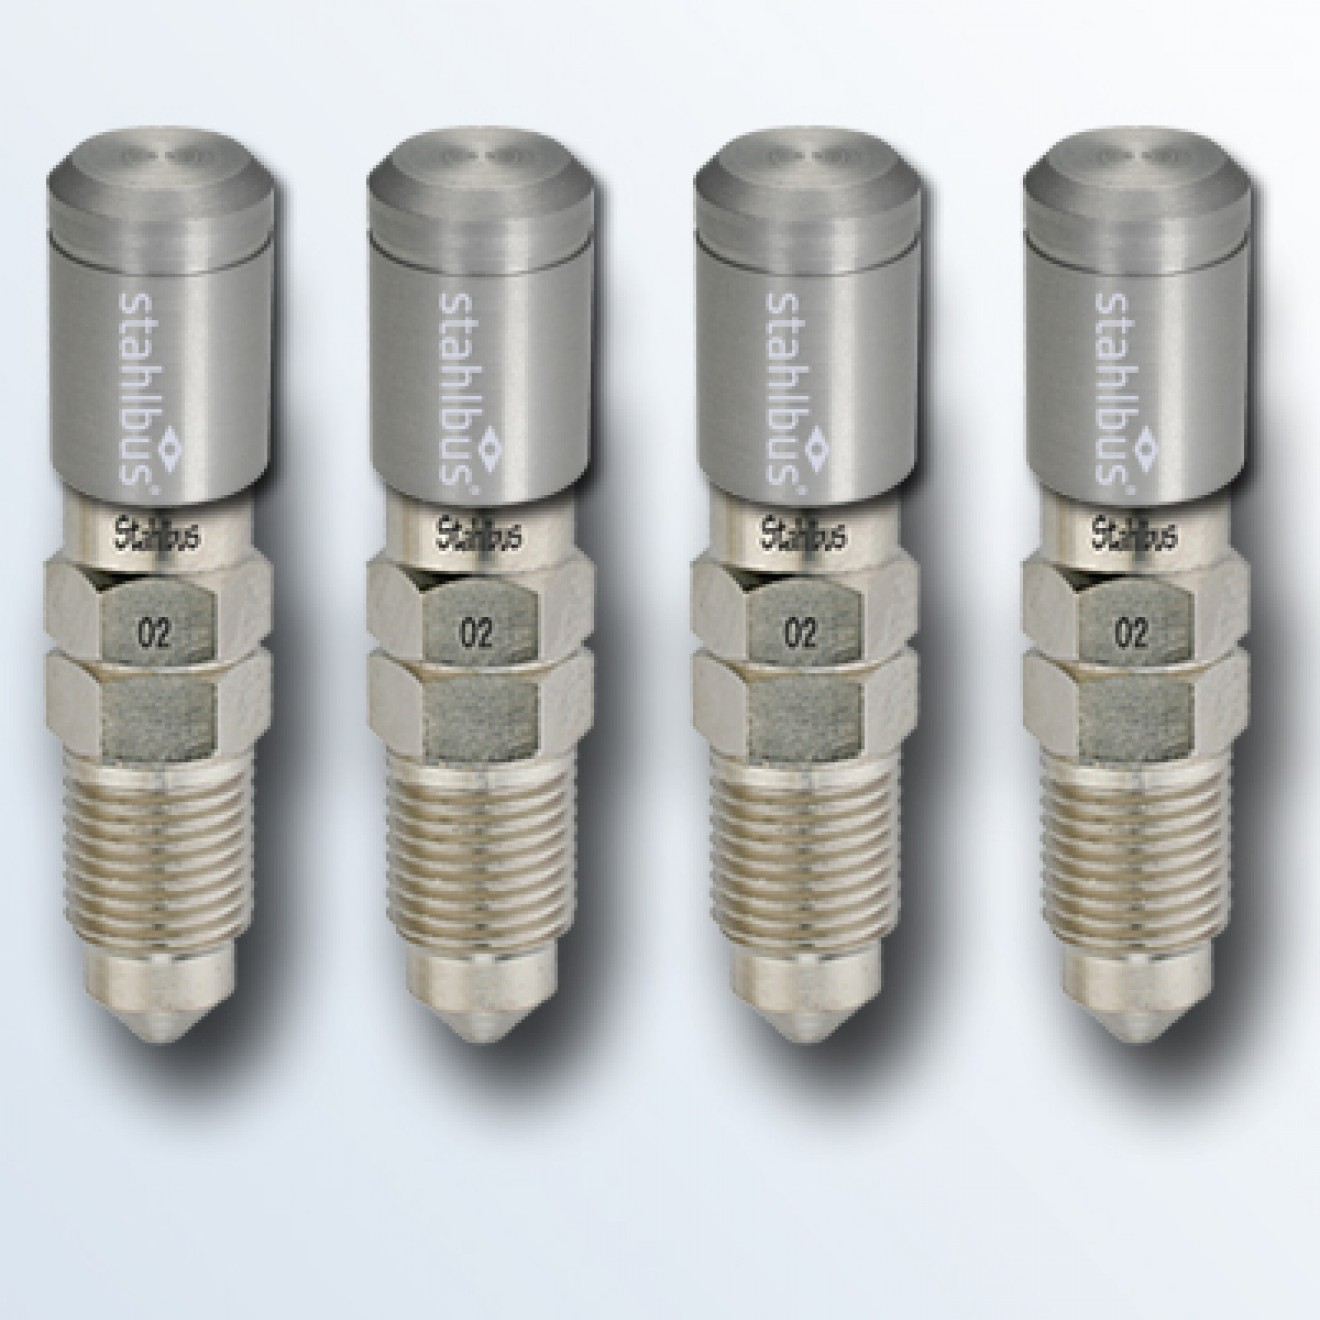 4-piece set stahlbus Bleeder valve M10x1.5x20mm, steel with natural dust cap